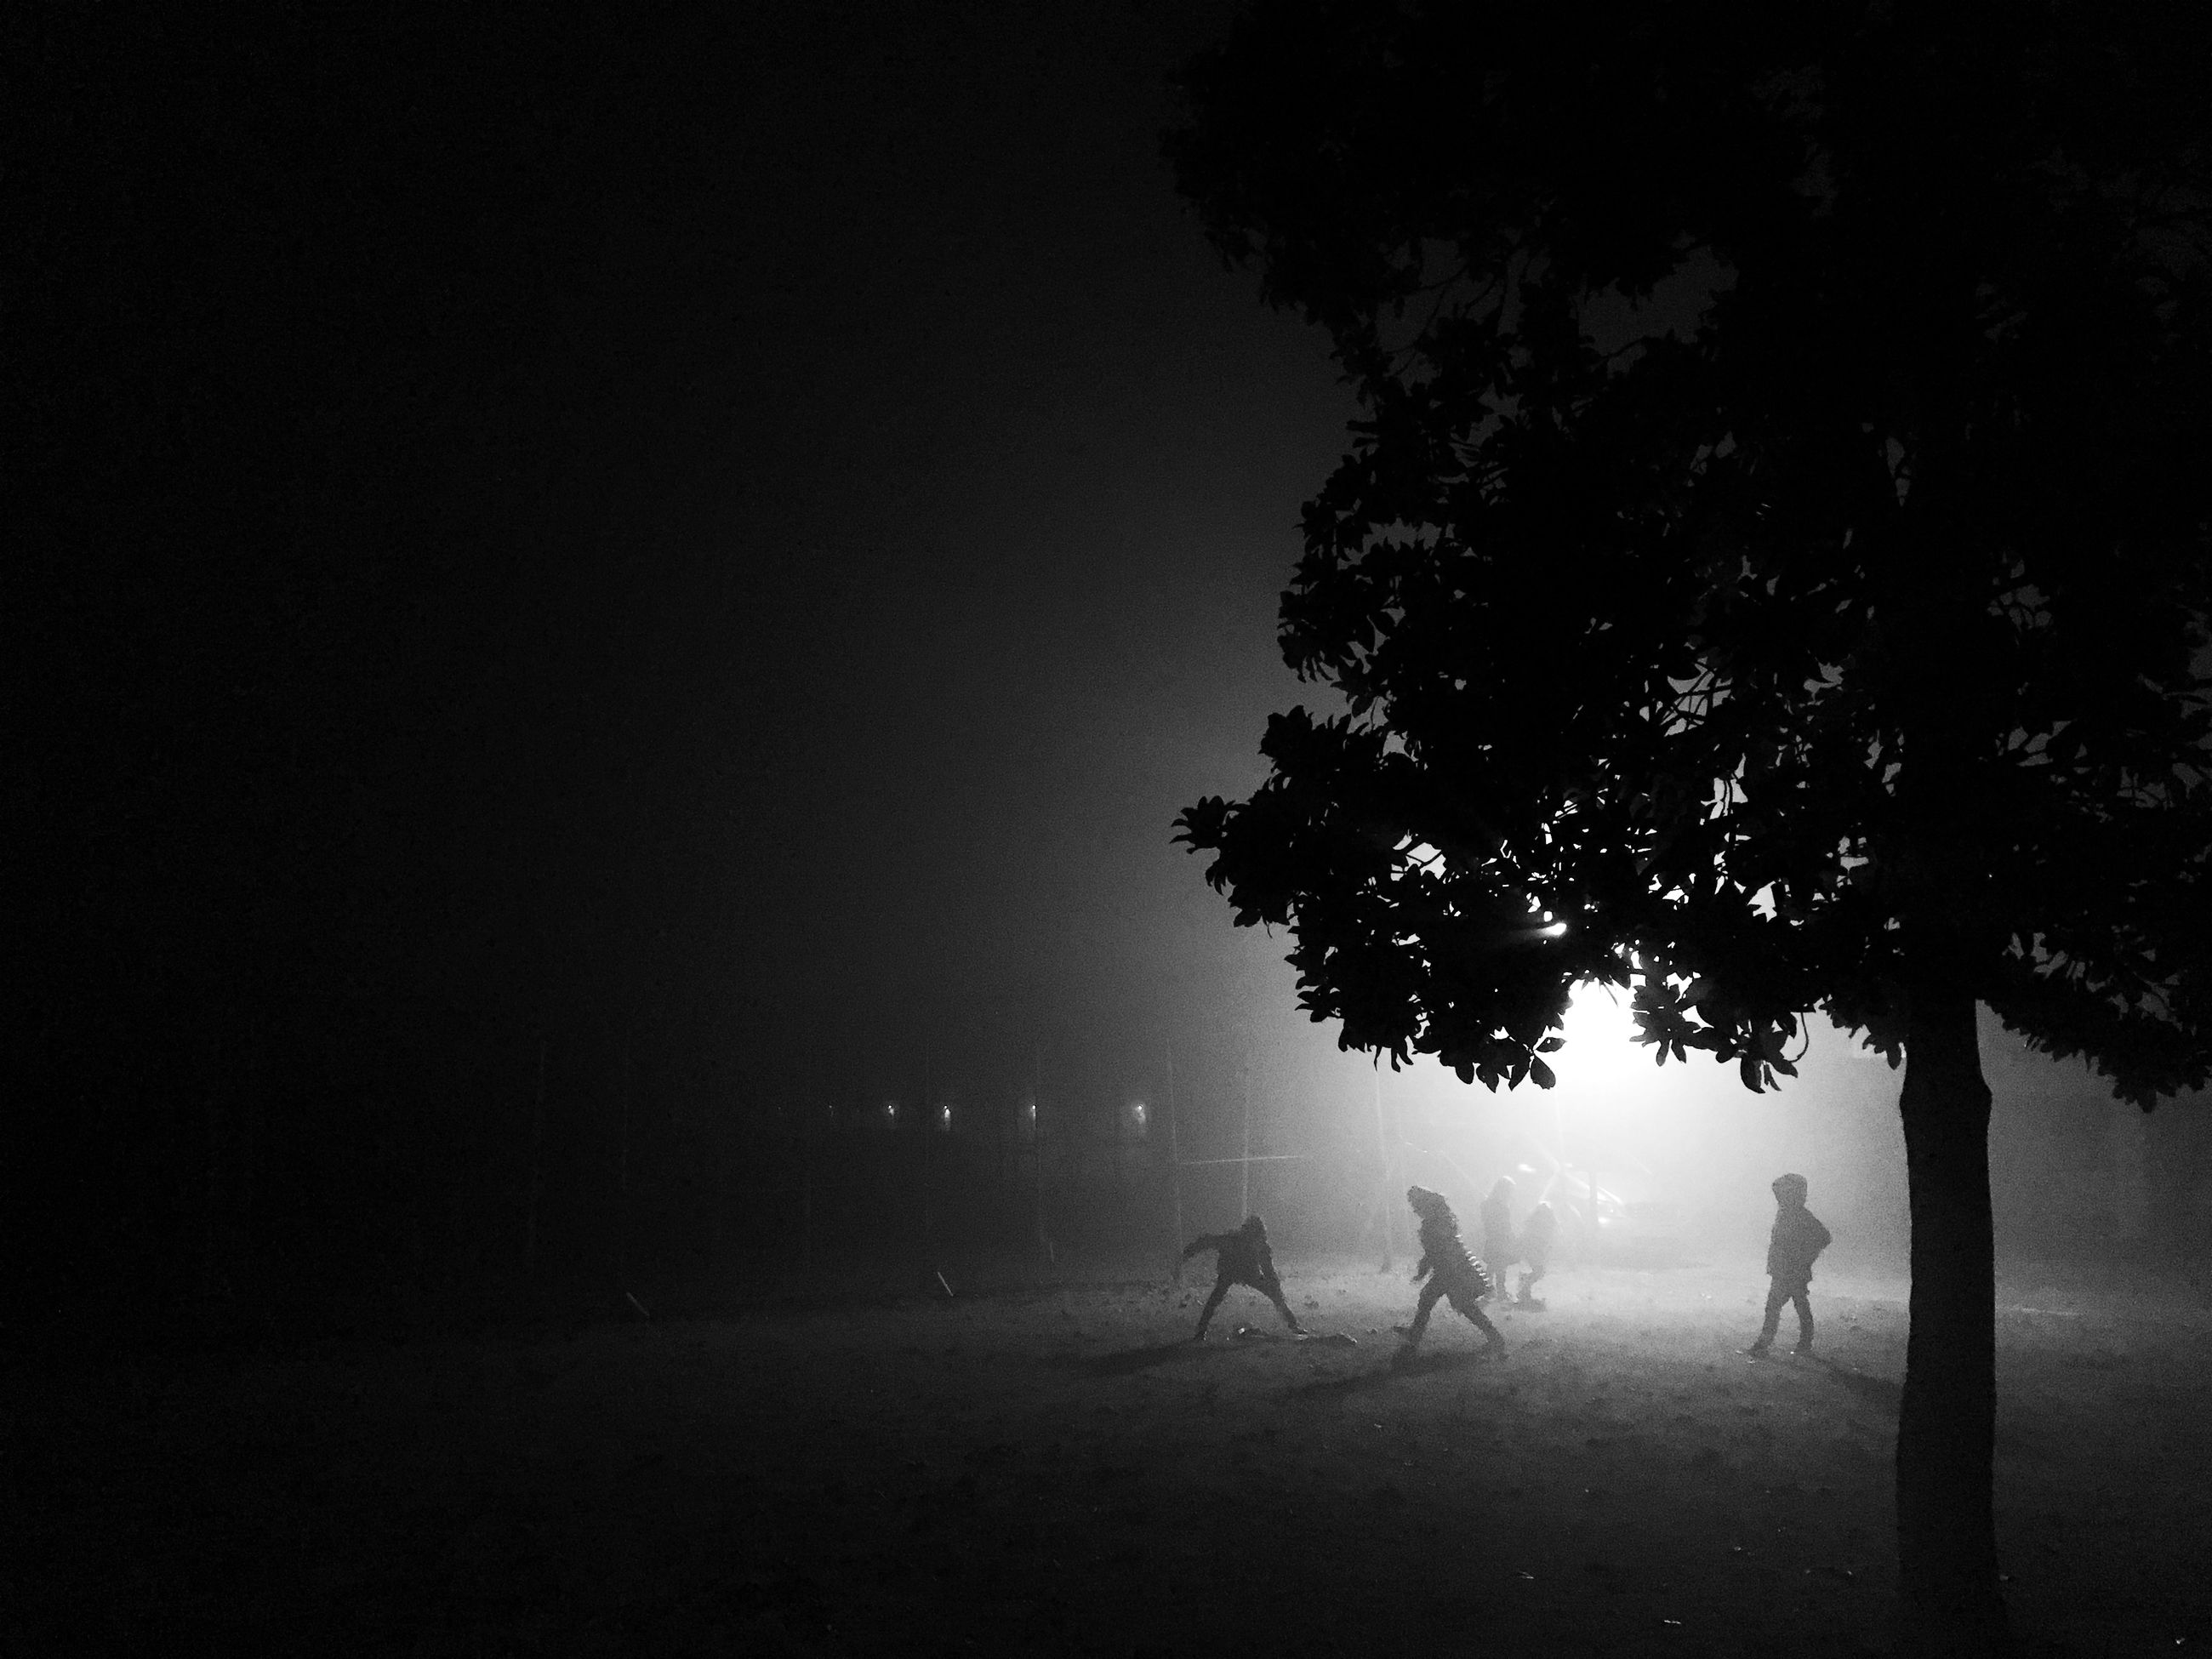 tree, silhouette, fog, tranquility, night, tranquil scene, weather, nature, the way forward, copy space, foggy, beauty in nature, road, landscape, scenics, field, dusk, dark, outdoors